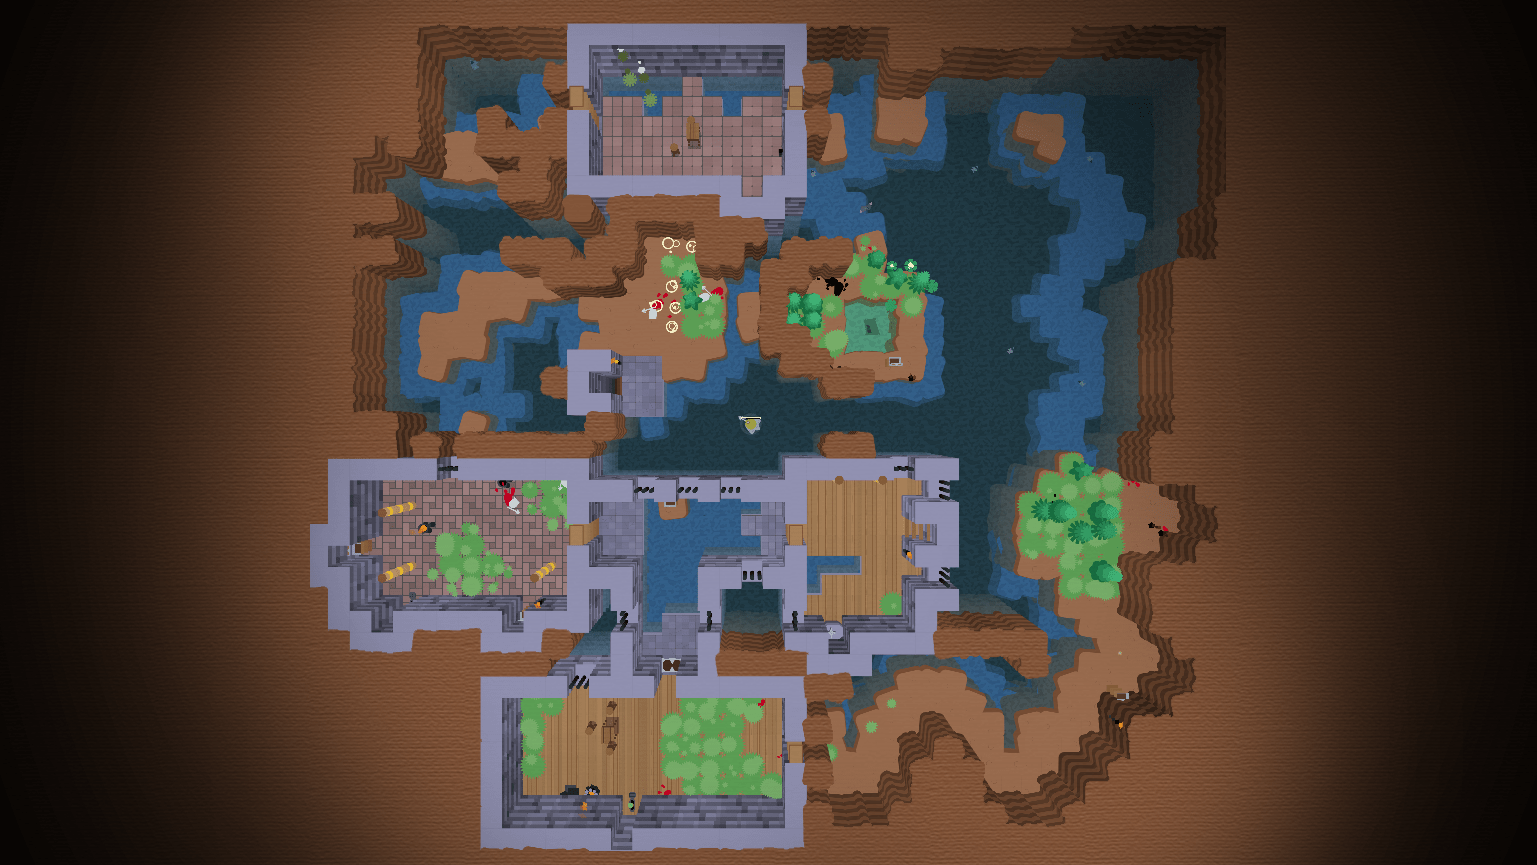 A Handcrafted Feel: 'Unexplored' Explores Cyclic Dungeon Generation